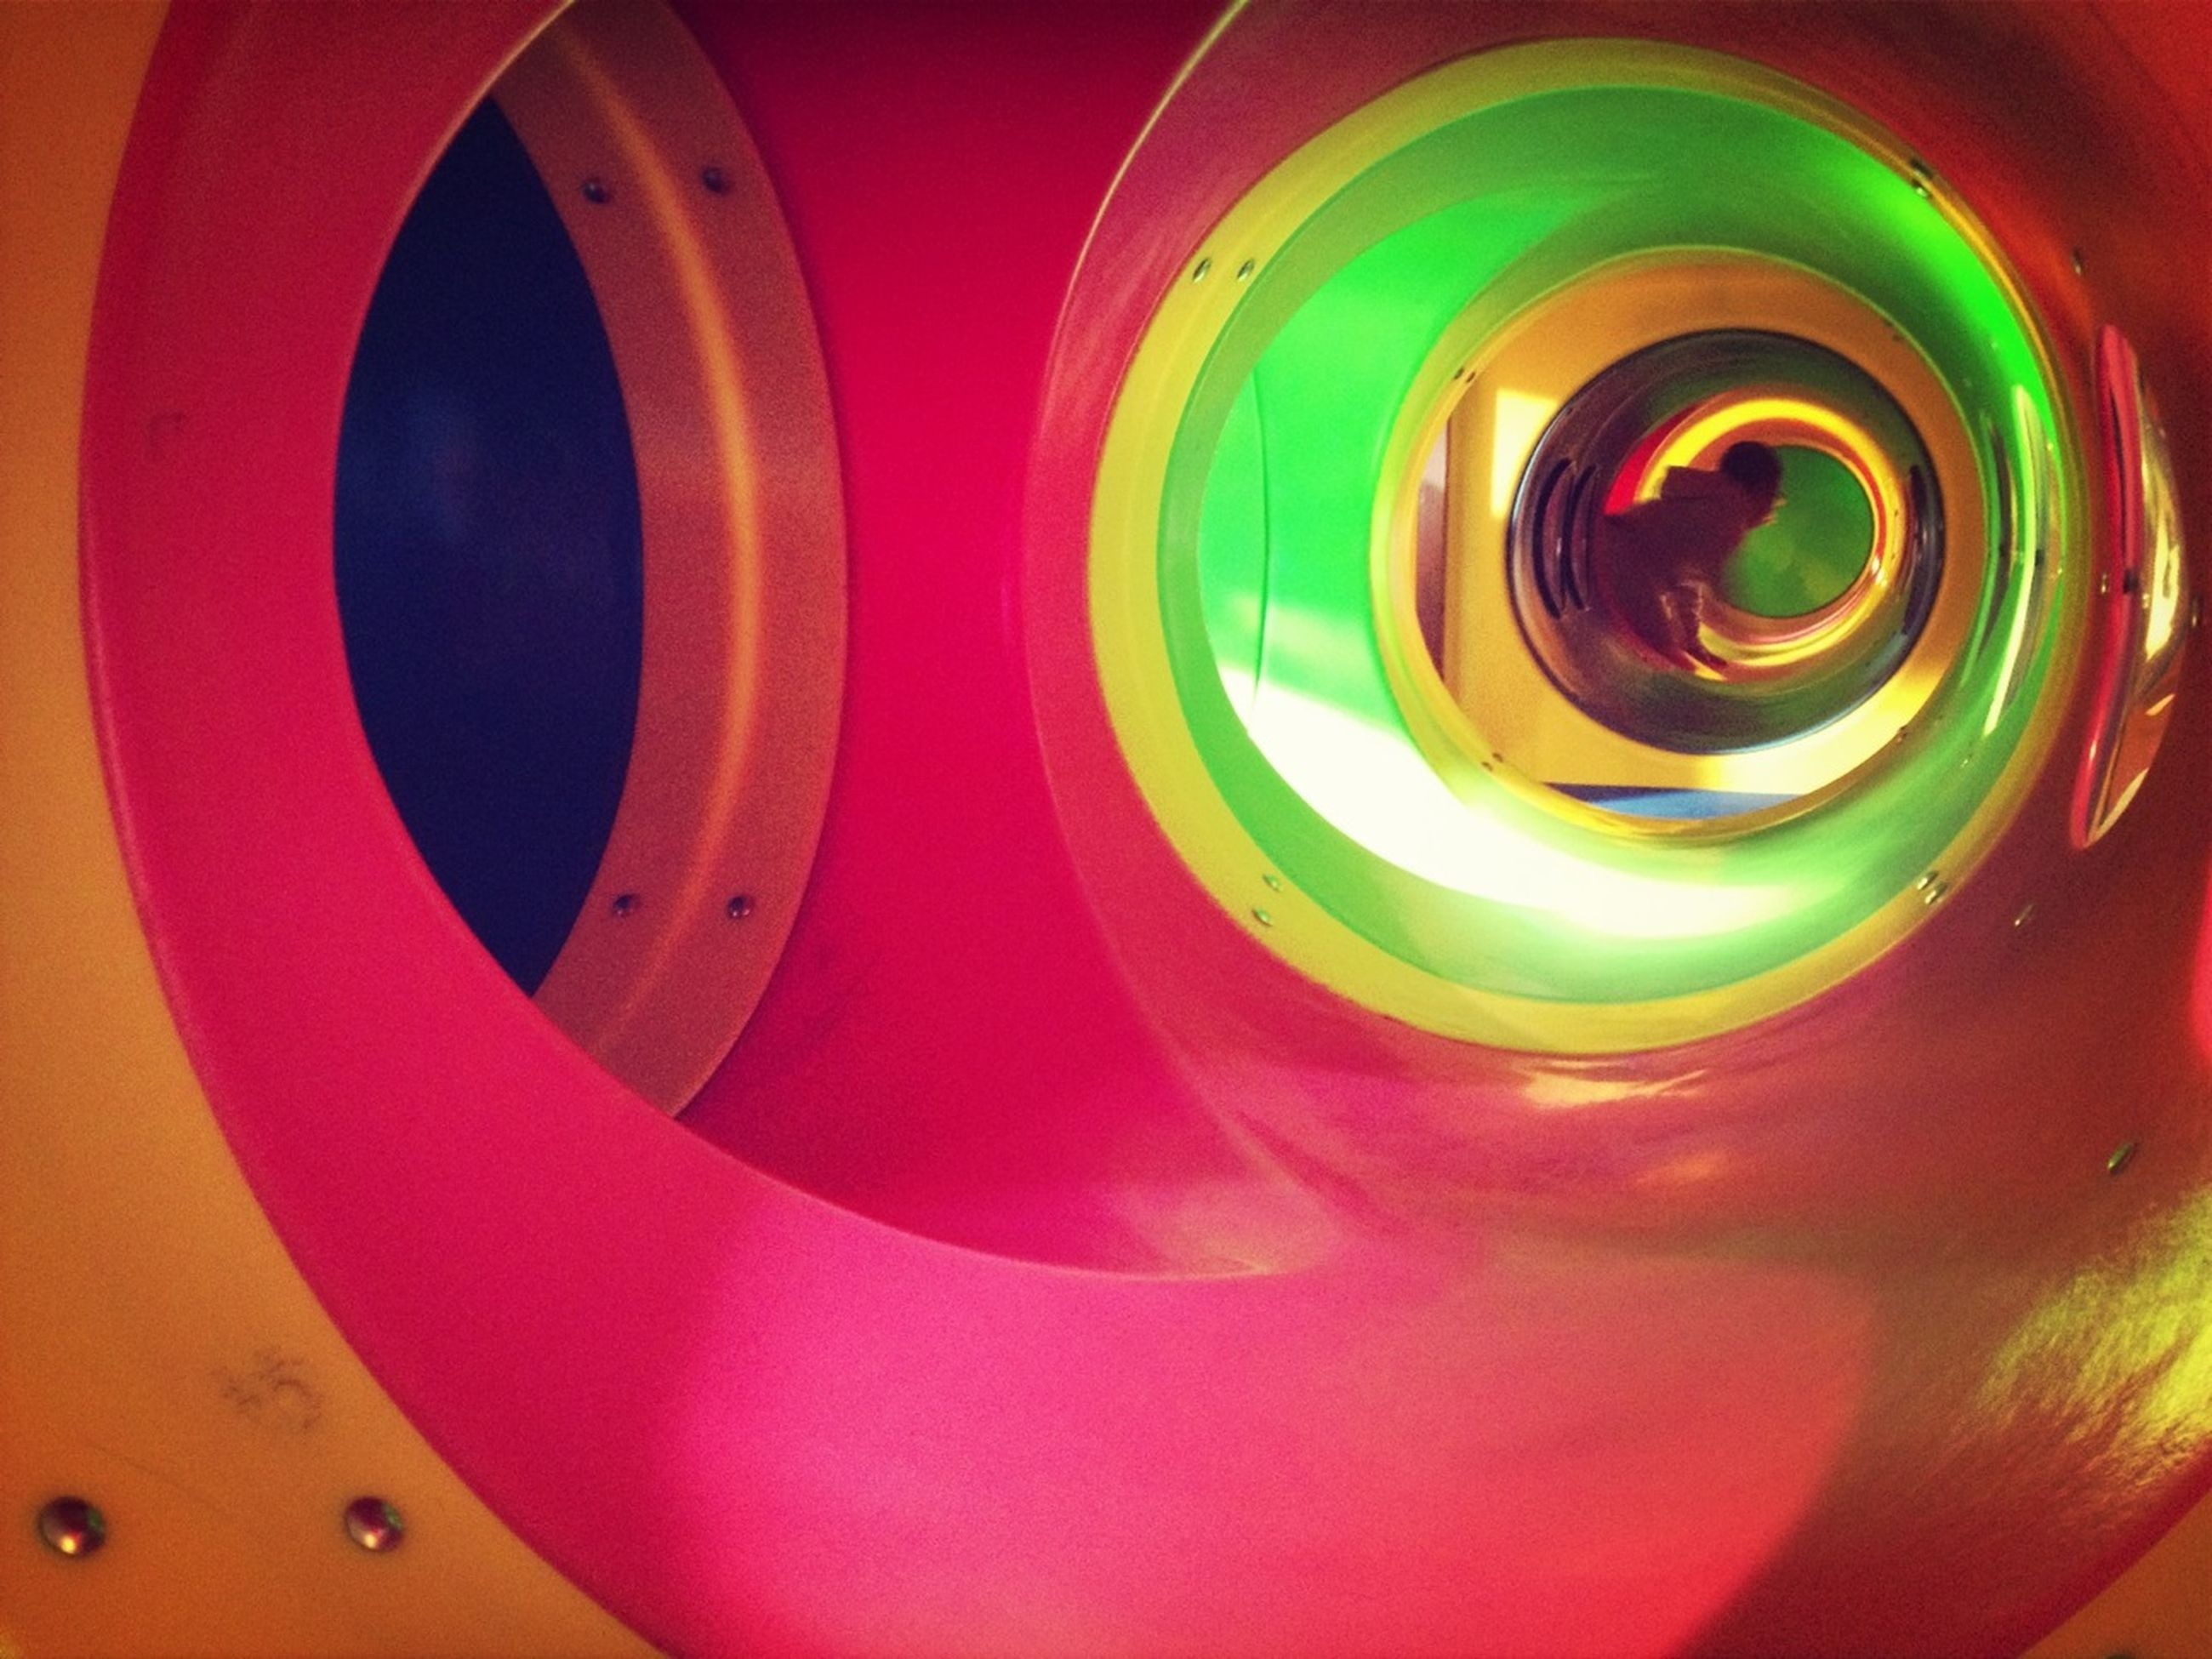 multi colored, indoors, pattern, circle, abstract, creativity, art and craft, design, full frame, art, backgrounds, red, close-up, colorful, geometric shape, shape, spiral, illuminated, no people, decoration